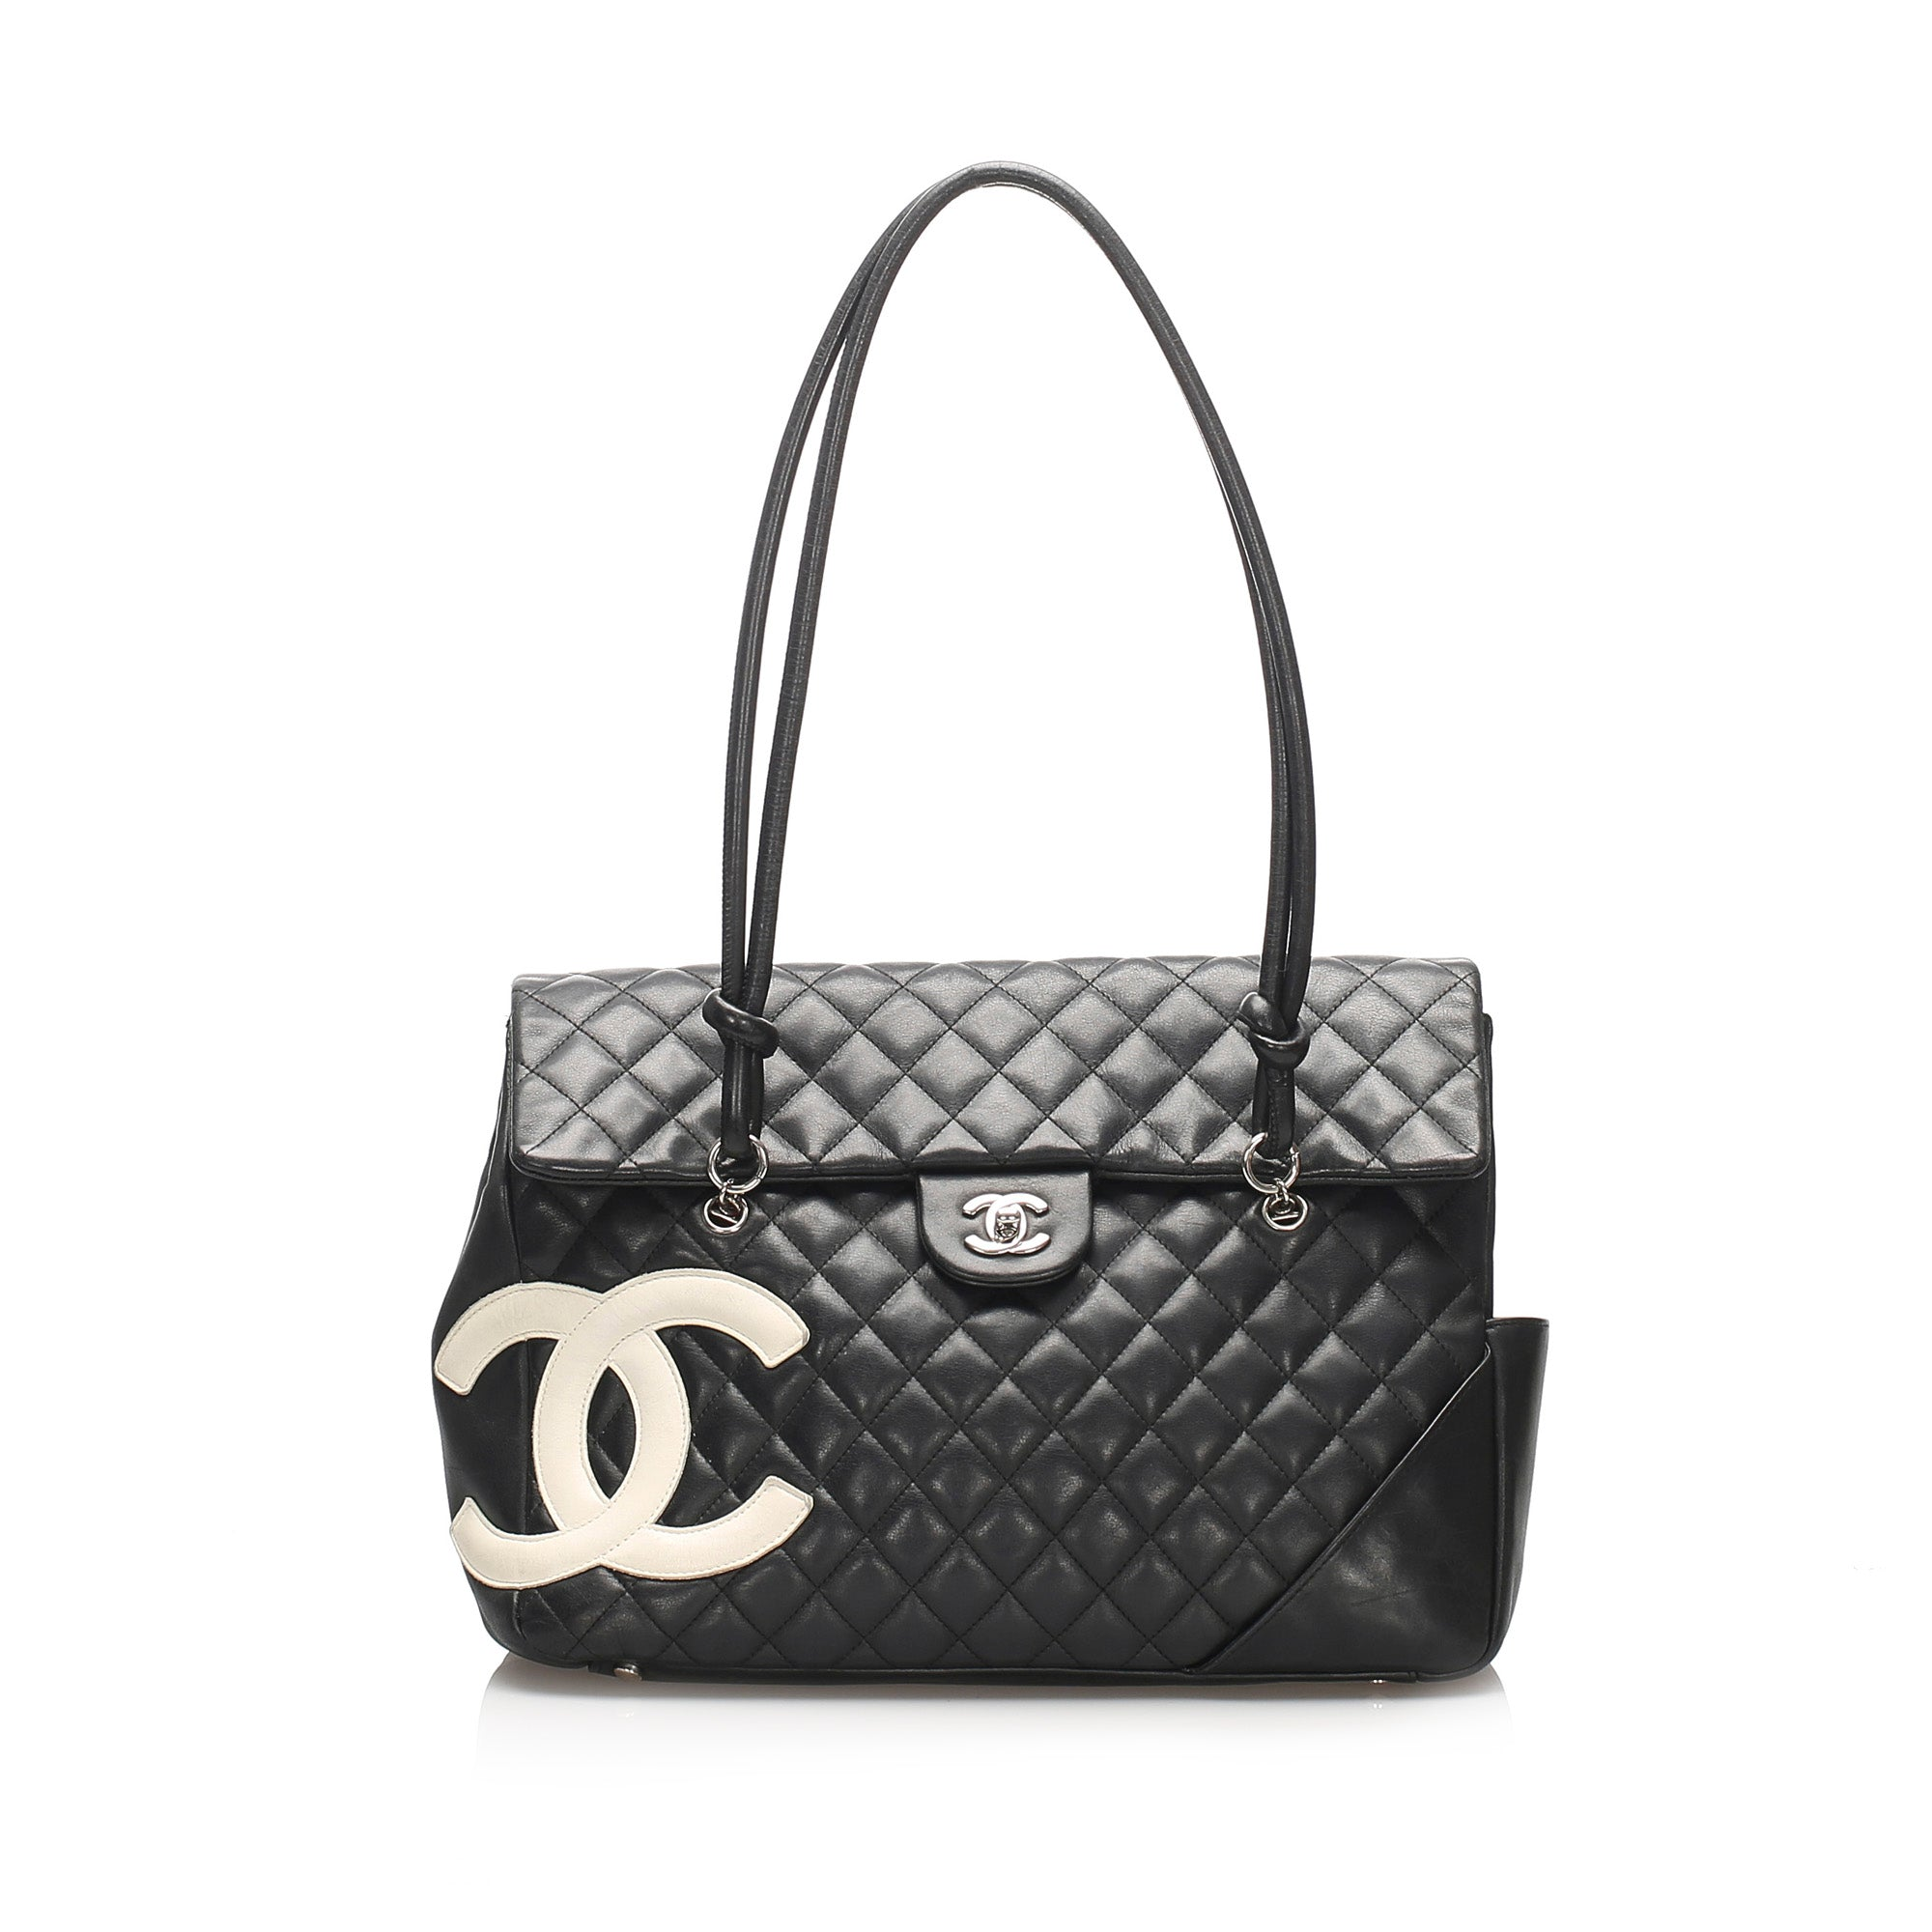 Chanel Black Cambon Ligne Lambskin Leather Tote Bag